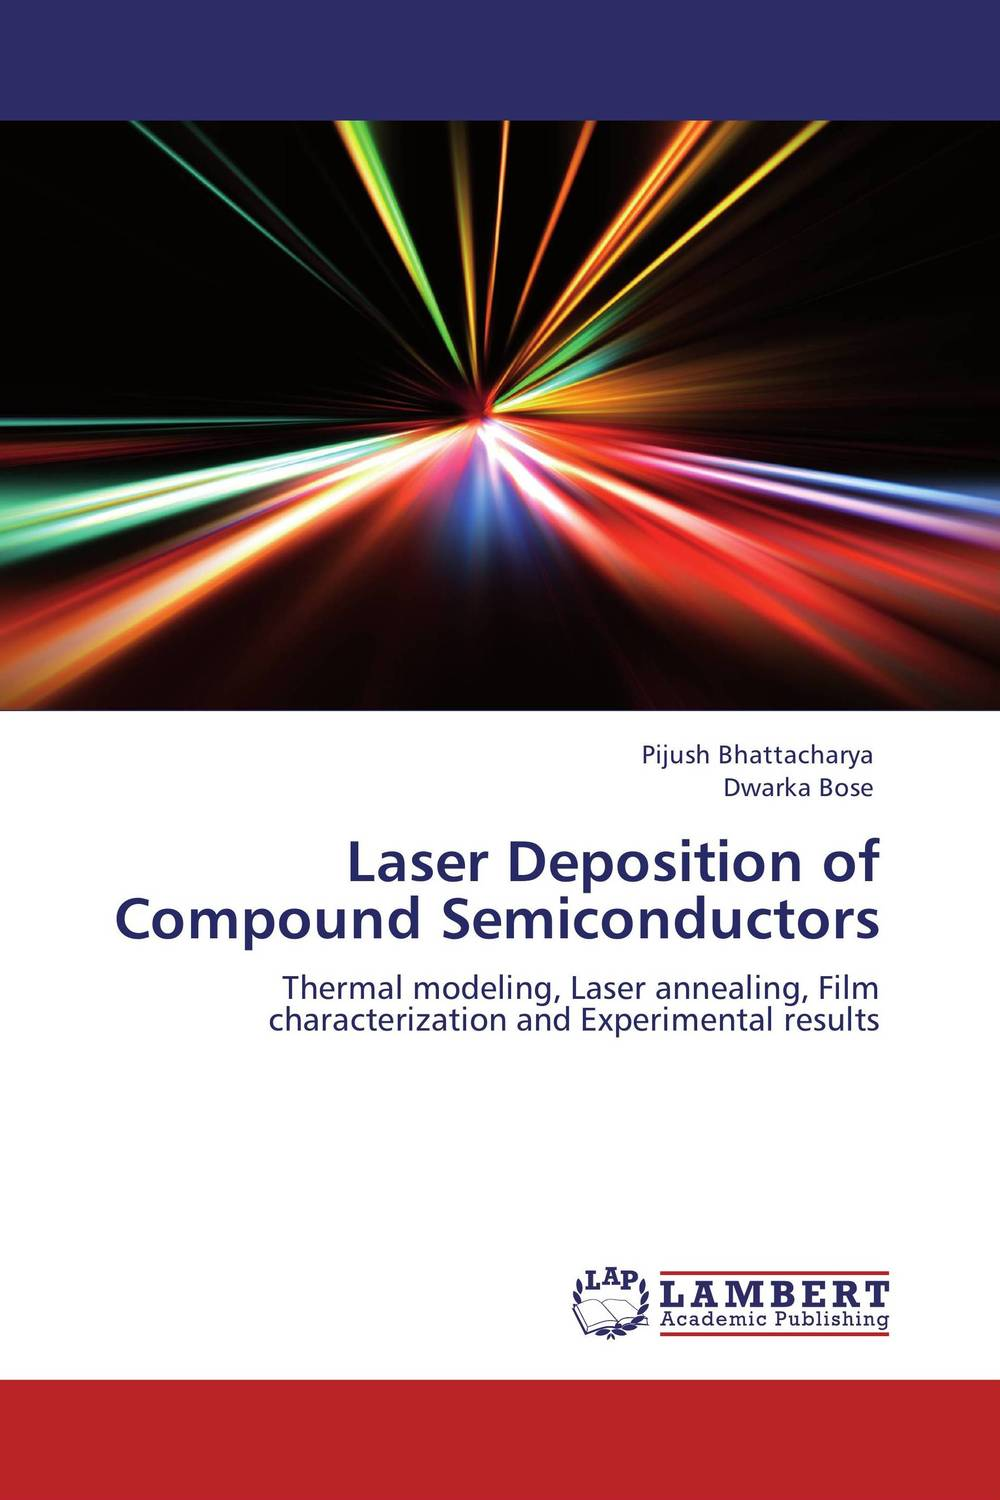 Laser Deposition of Compound Semiconductors esam jassim hydrate formation and deposition in natural gas flow line